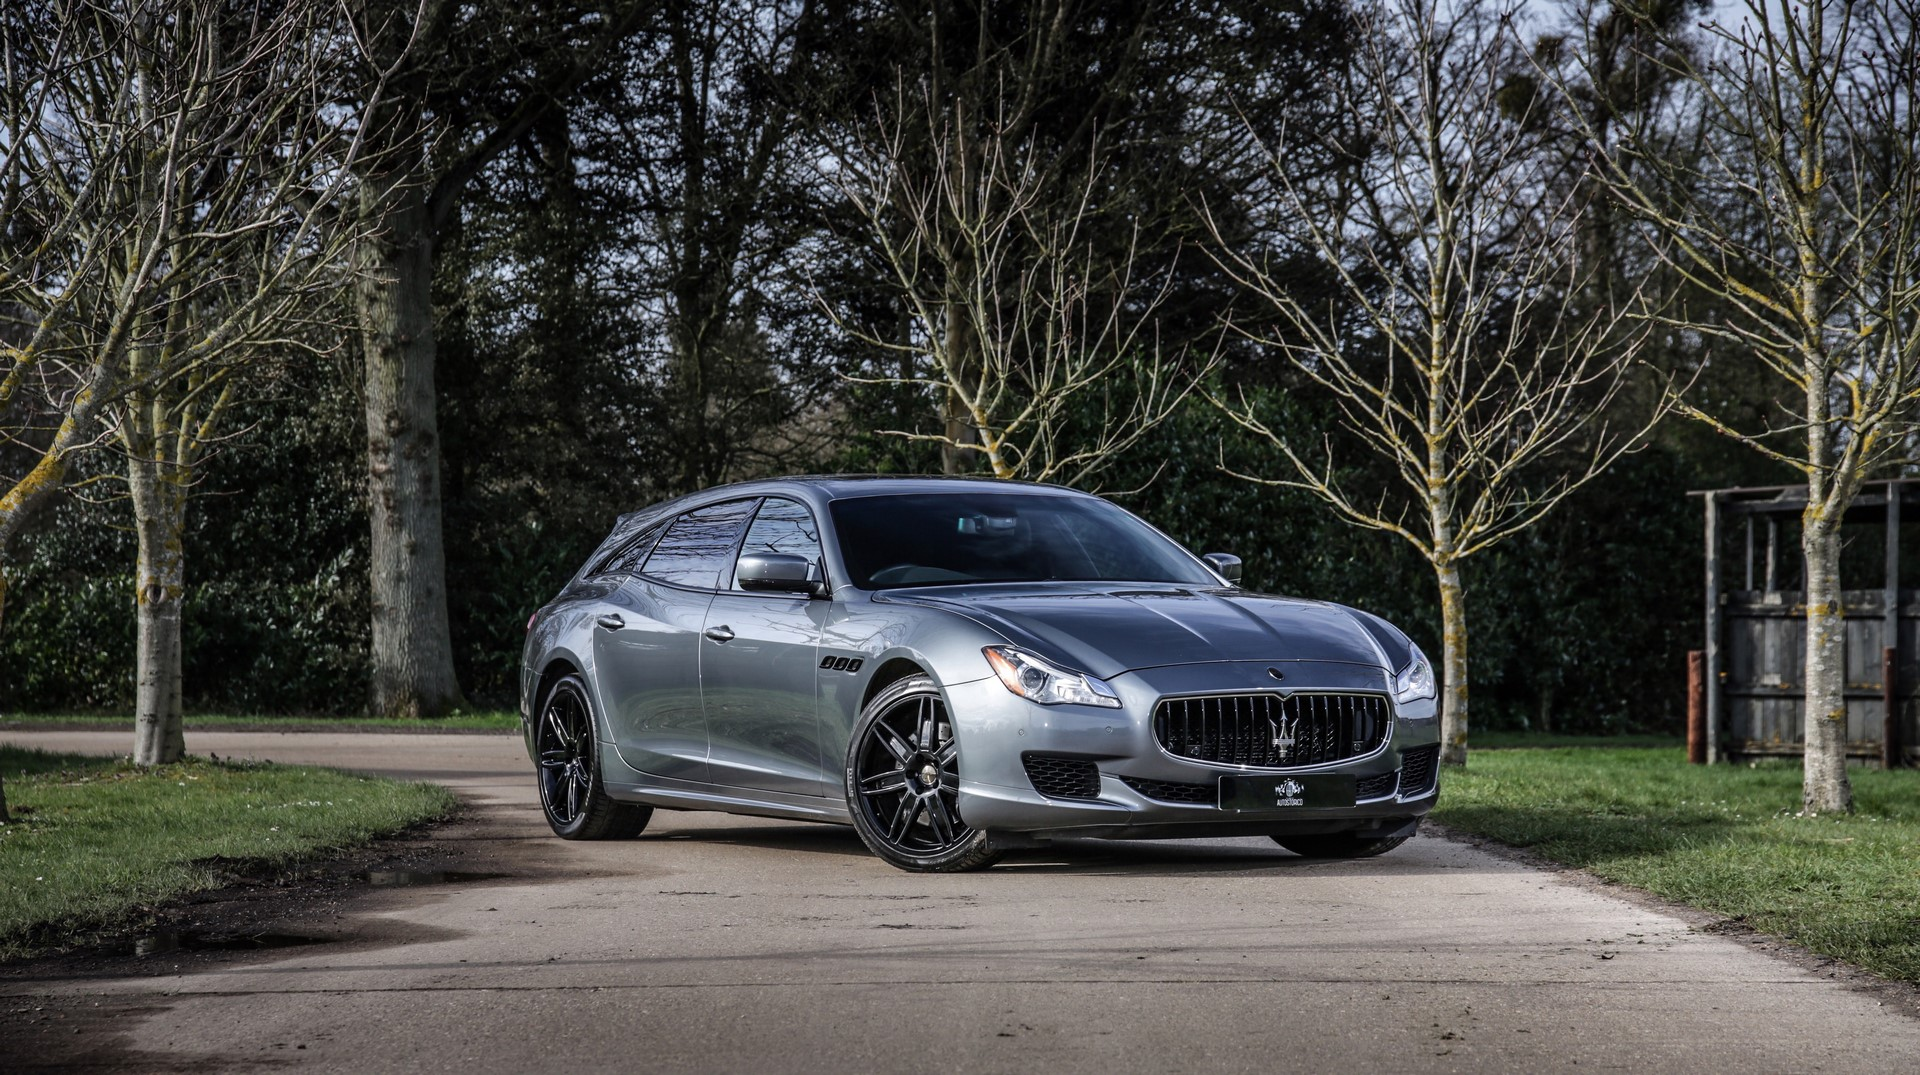 Maserati Quattroporte Shooting Brake (1)